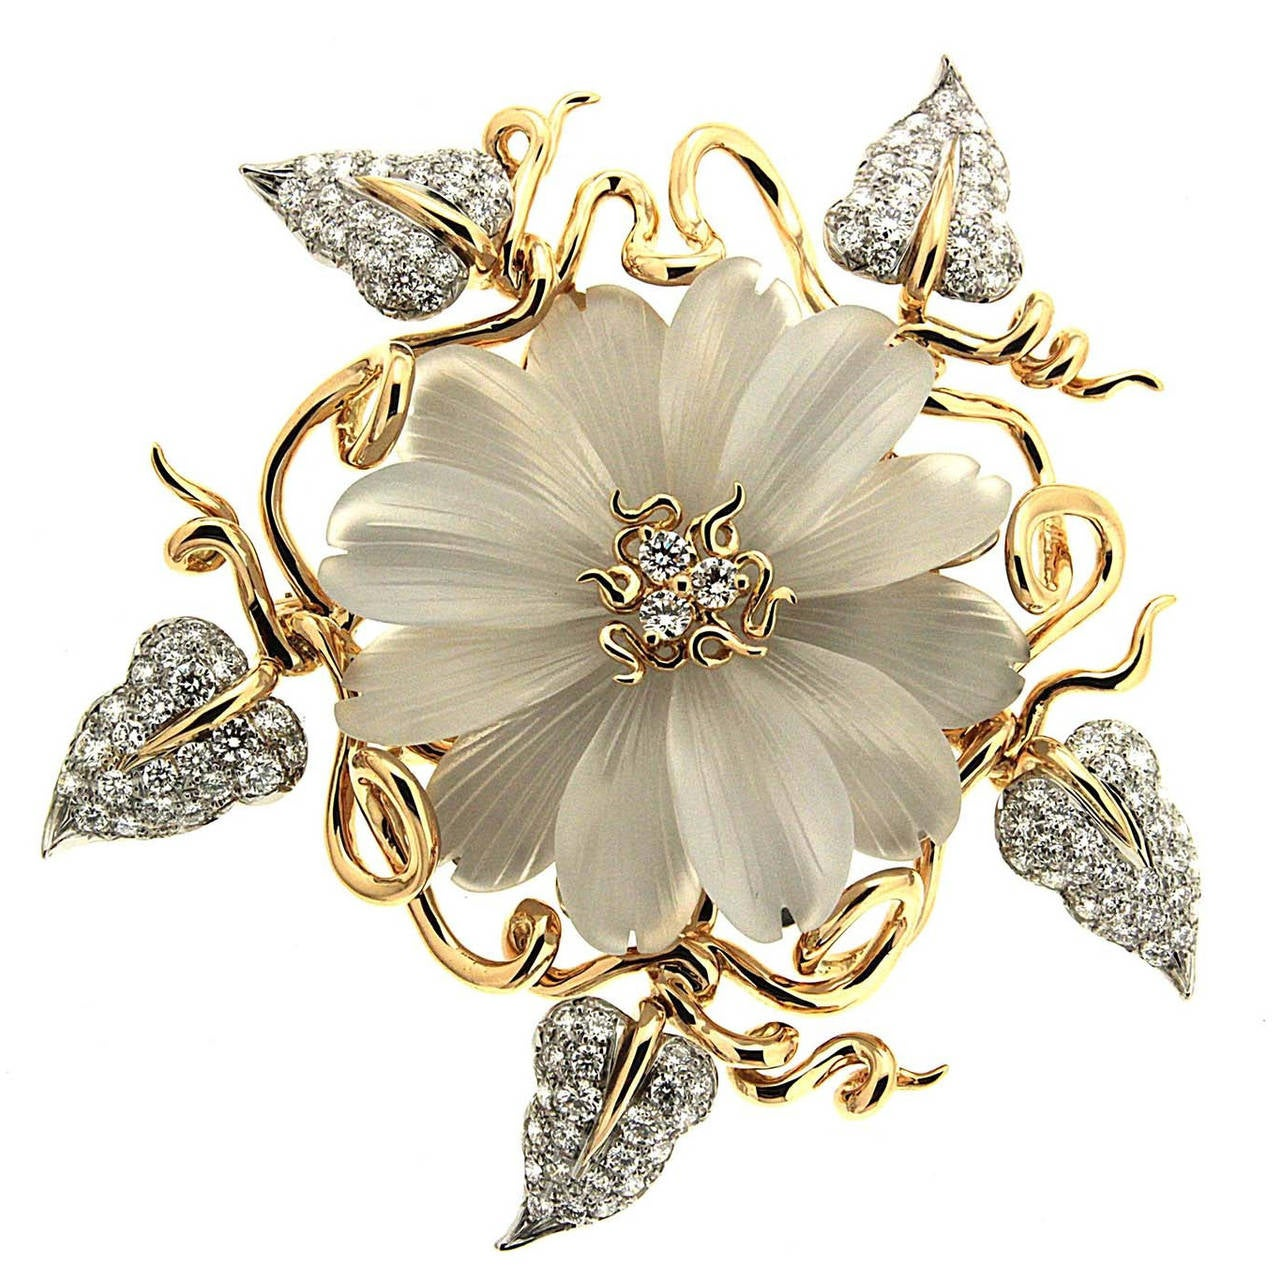 Hand Carved Crystal Diamond Gold Flower Brooch at 1stdibs